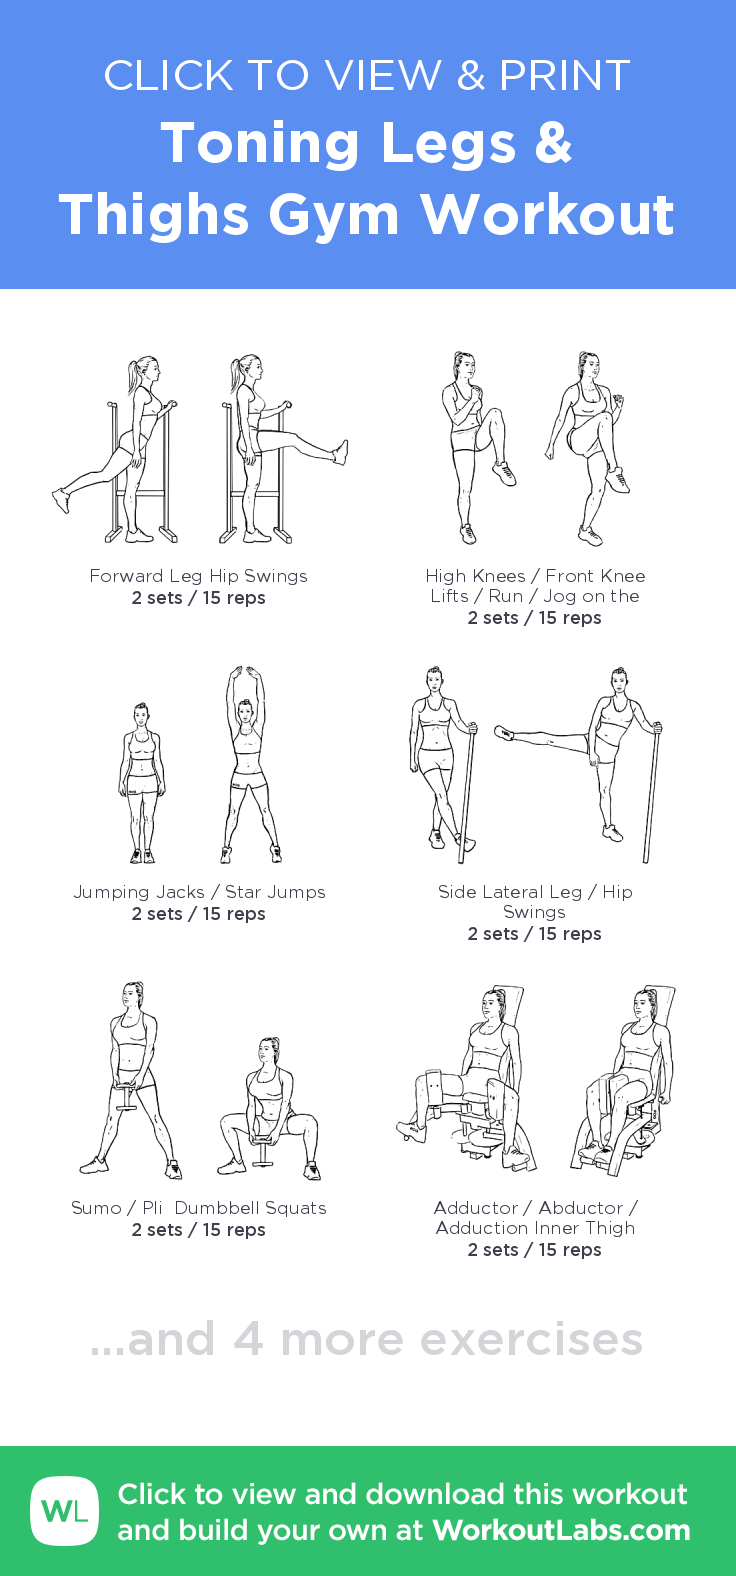 Toning Legs & Thighs Gym Workout click to view and print